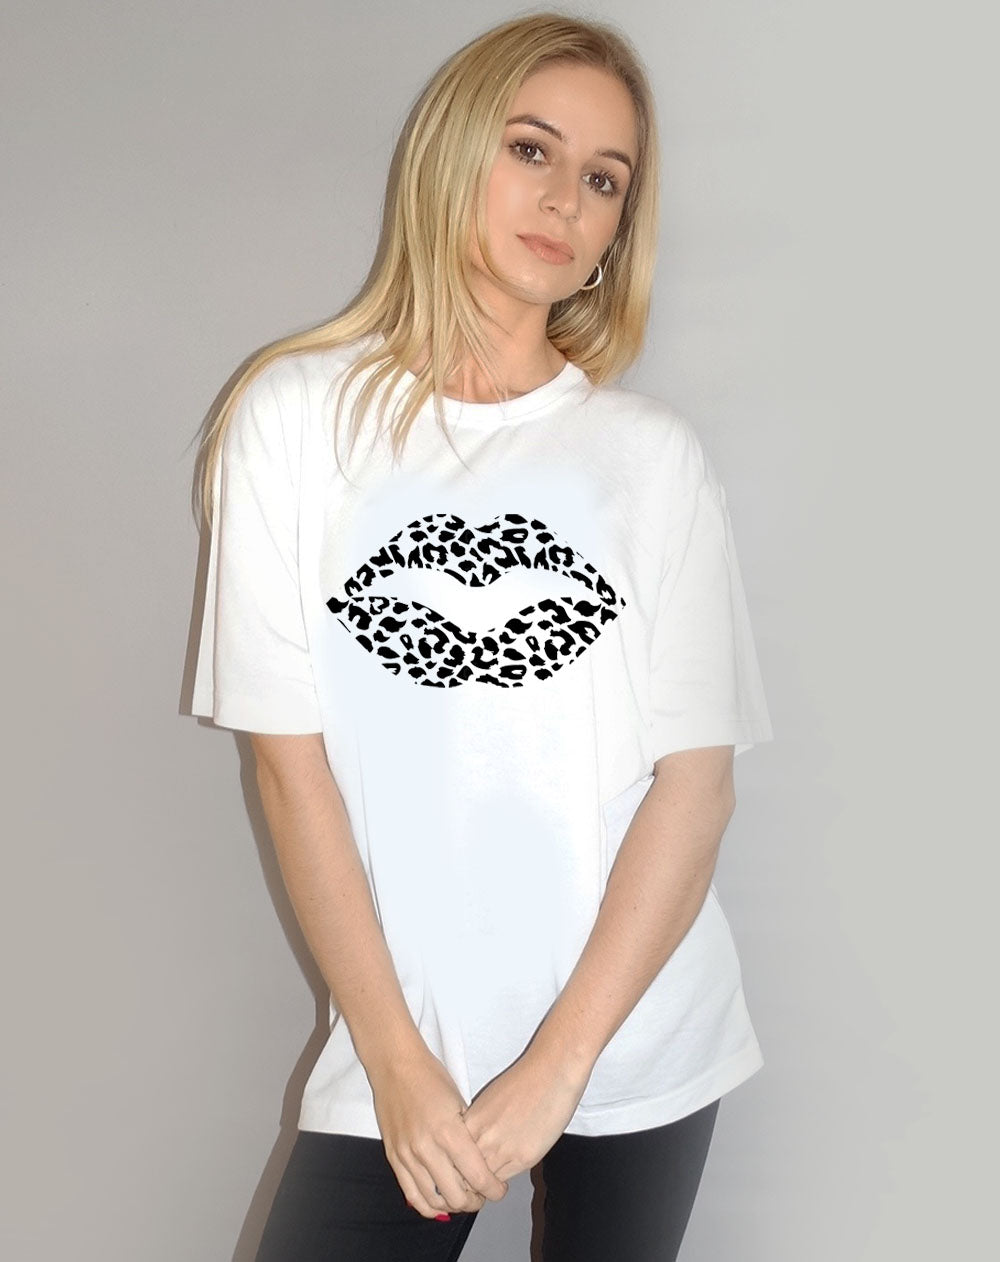 White Tshirt with Black & White Leopard Lip Print